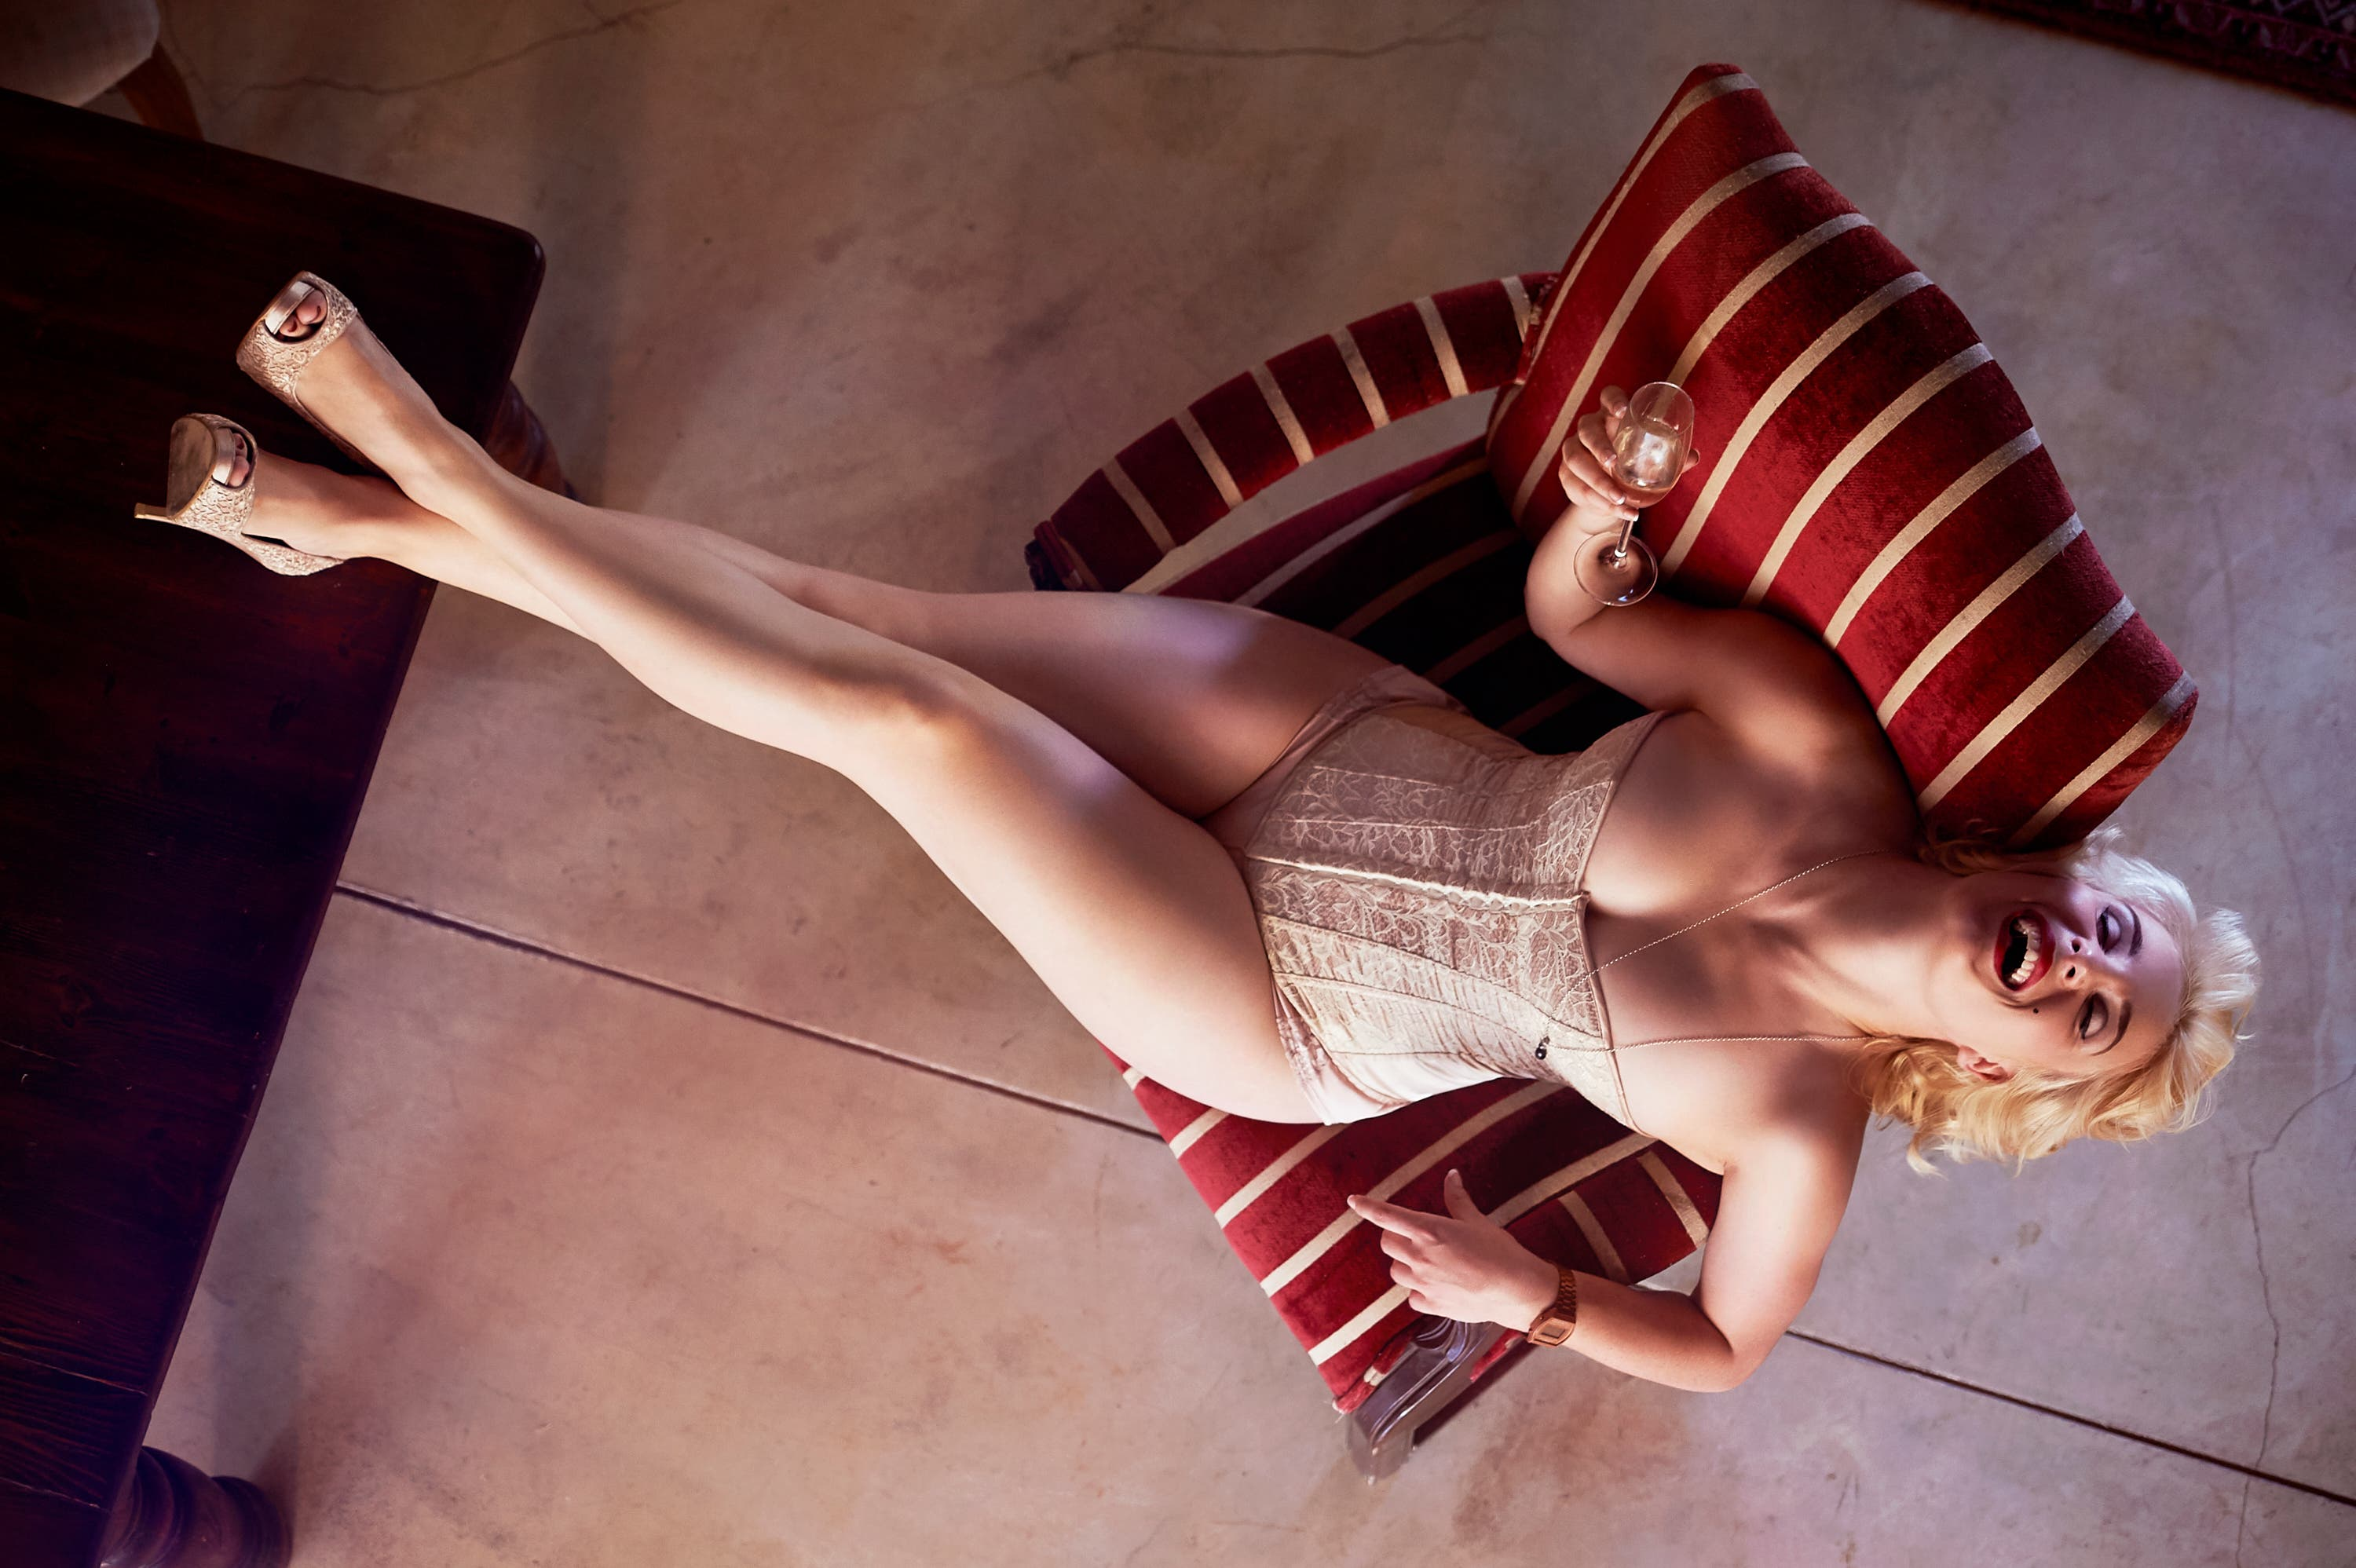 Photographer Kat Grudko Has a Secret for Better Boudoir Photography